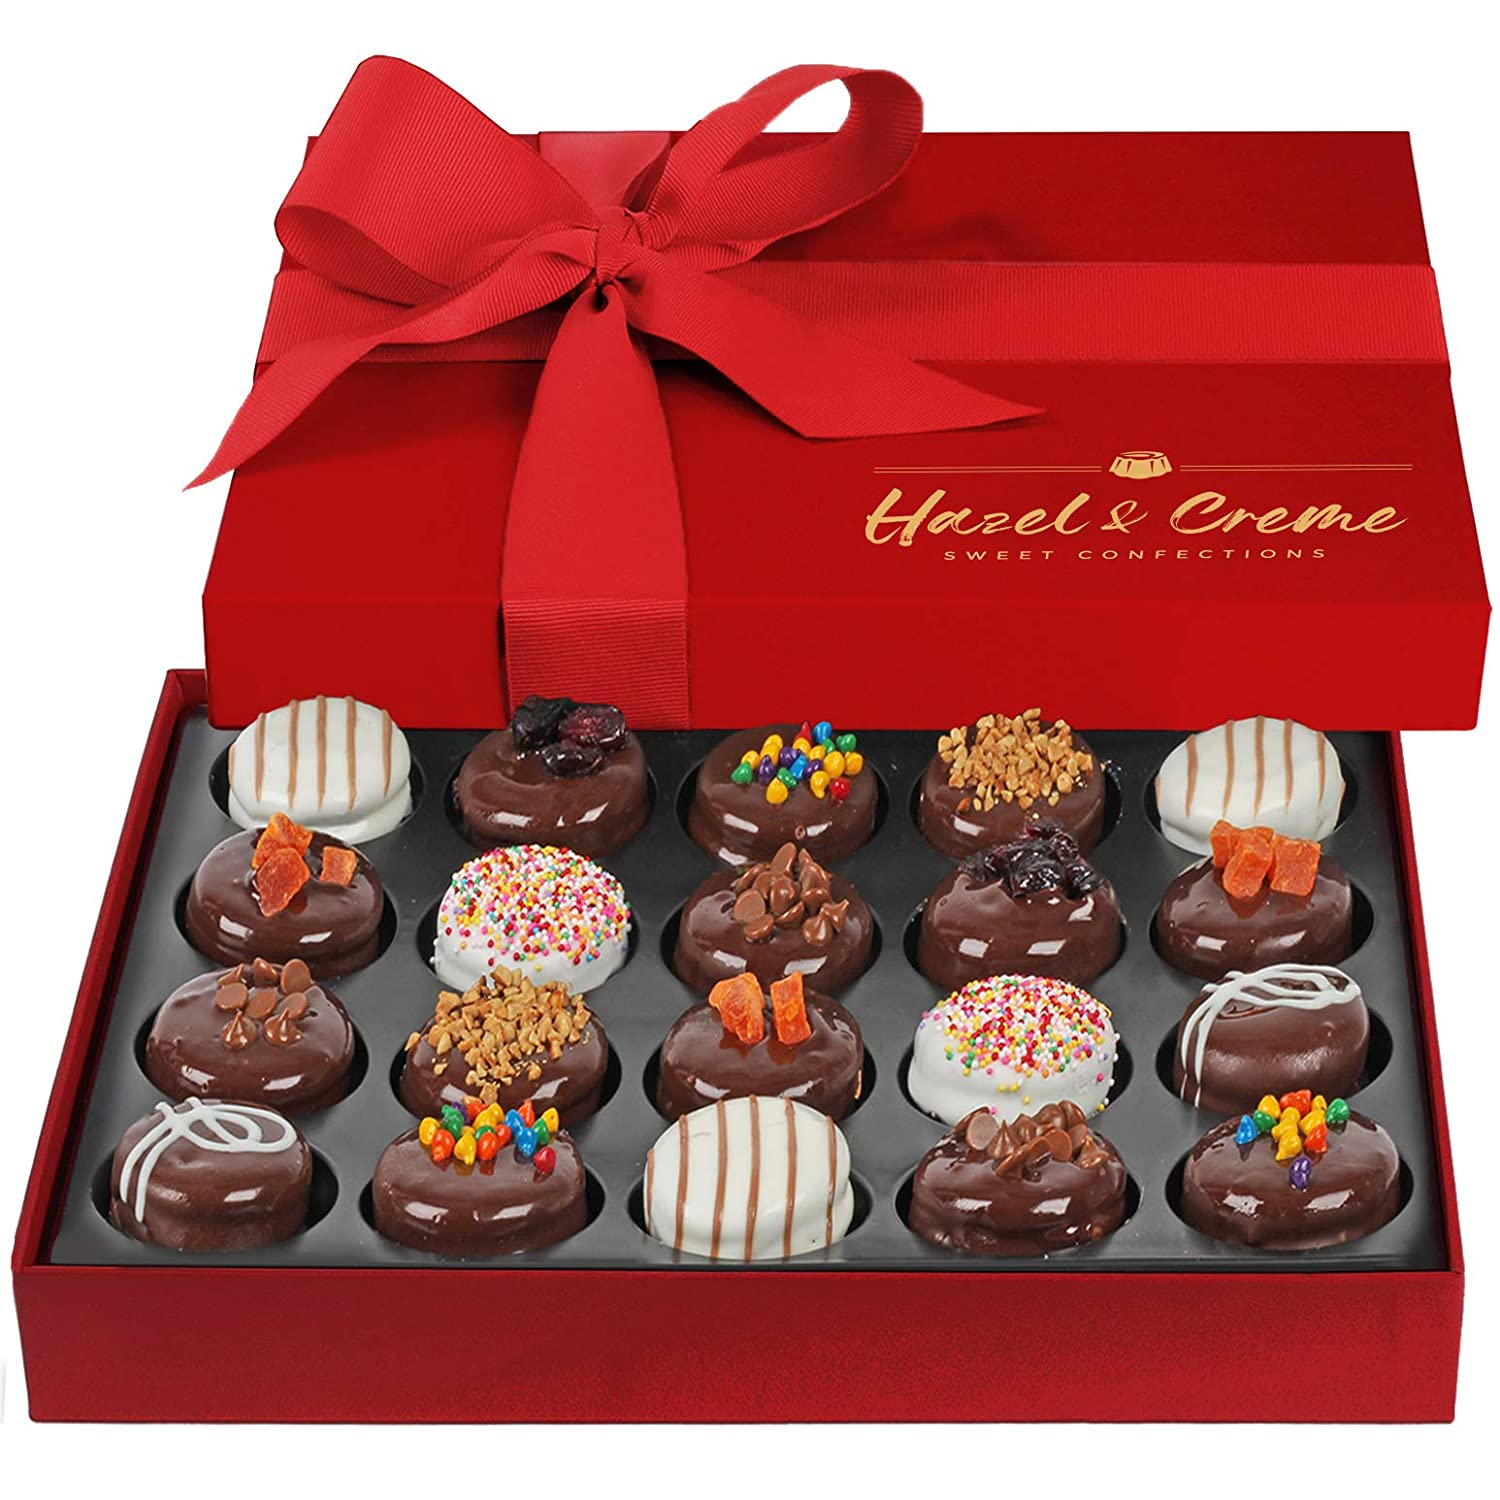 Hazel & Creme Chocolate Covered Cookie Gift - 20 Pcs - Valentines, Anniversary, Thank You, Birthday, Holiday Food Gift - Chocolate Gift Box